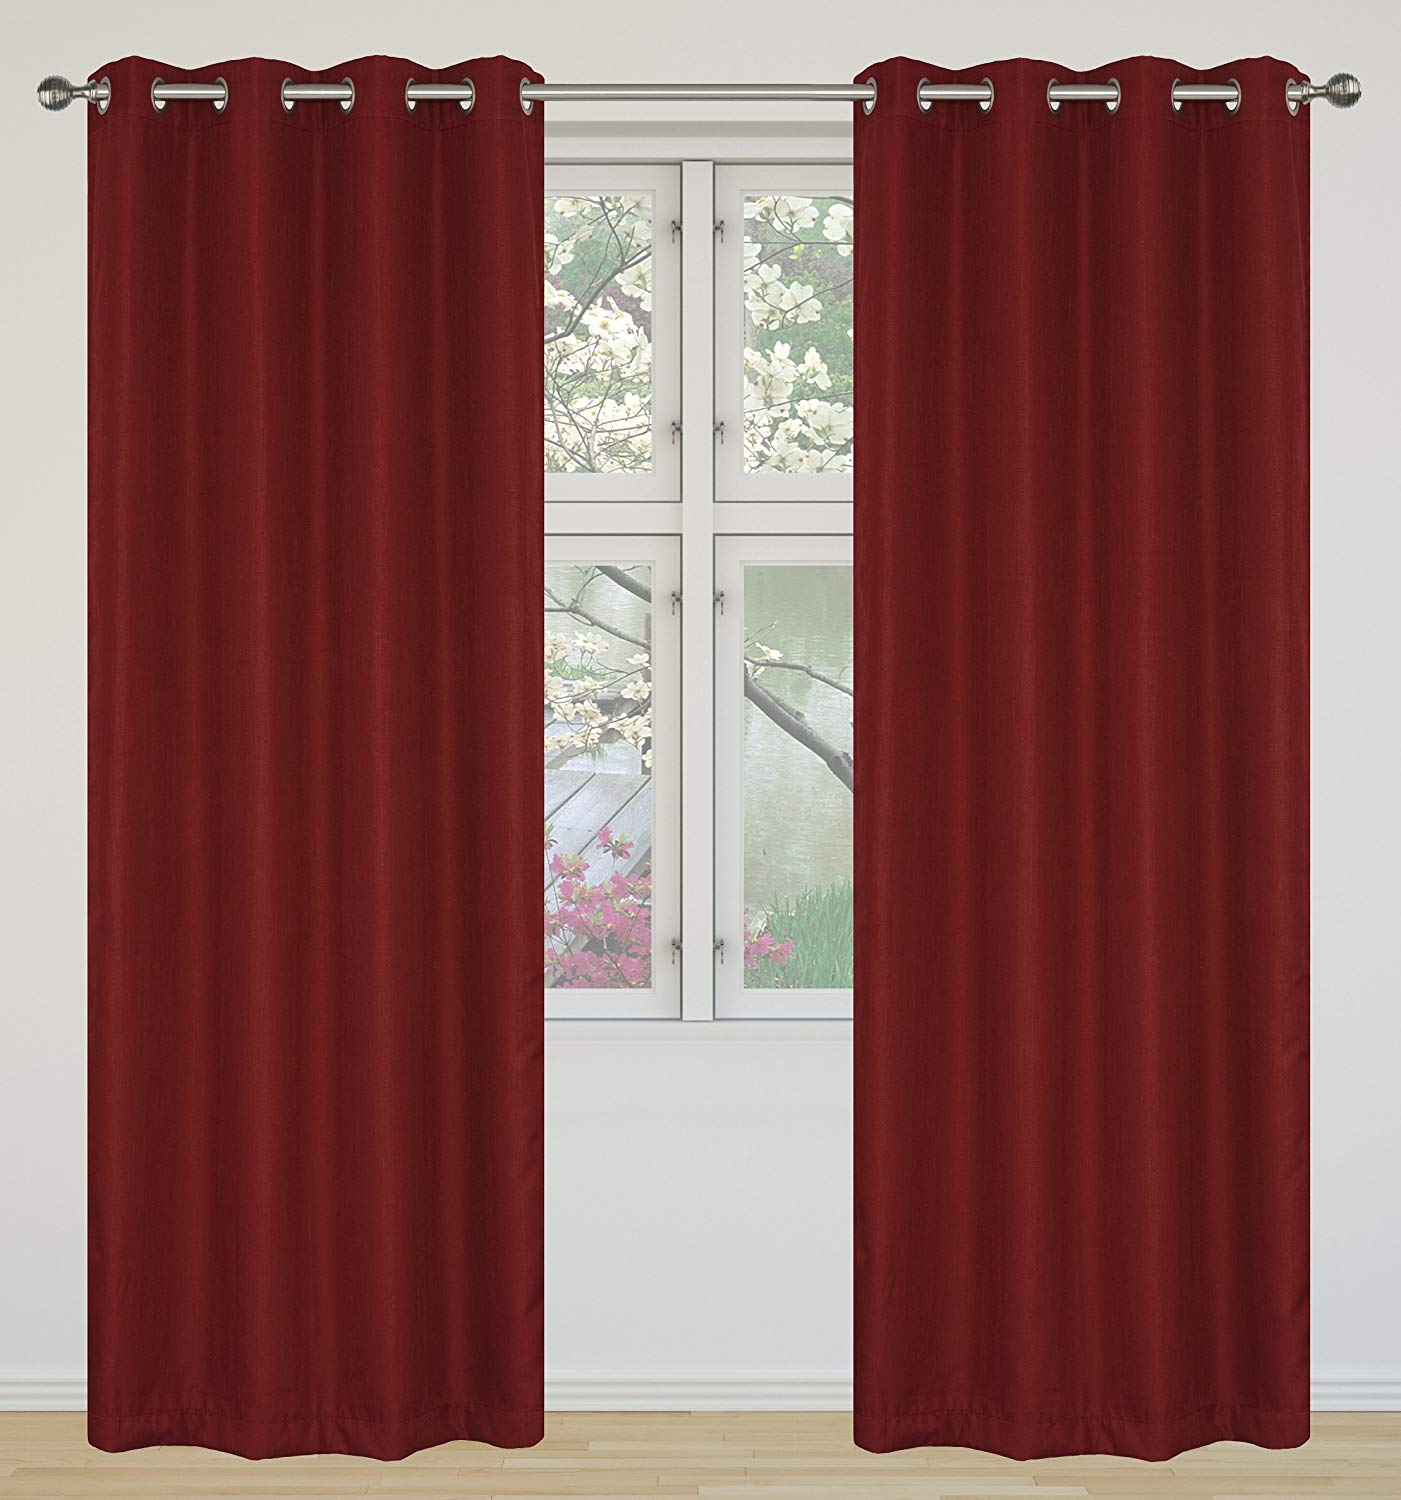 9. LJ Home Fashions Eclipse Room Darkening 100% Privacy Linen Look Grommet Curtain Panels